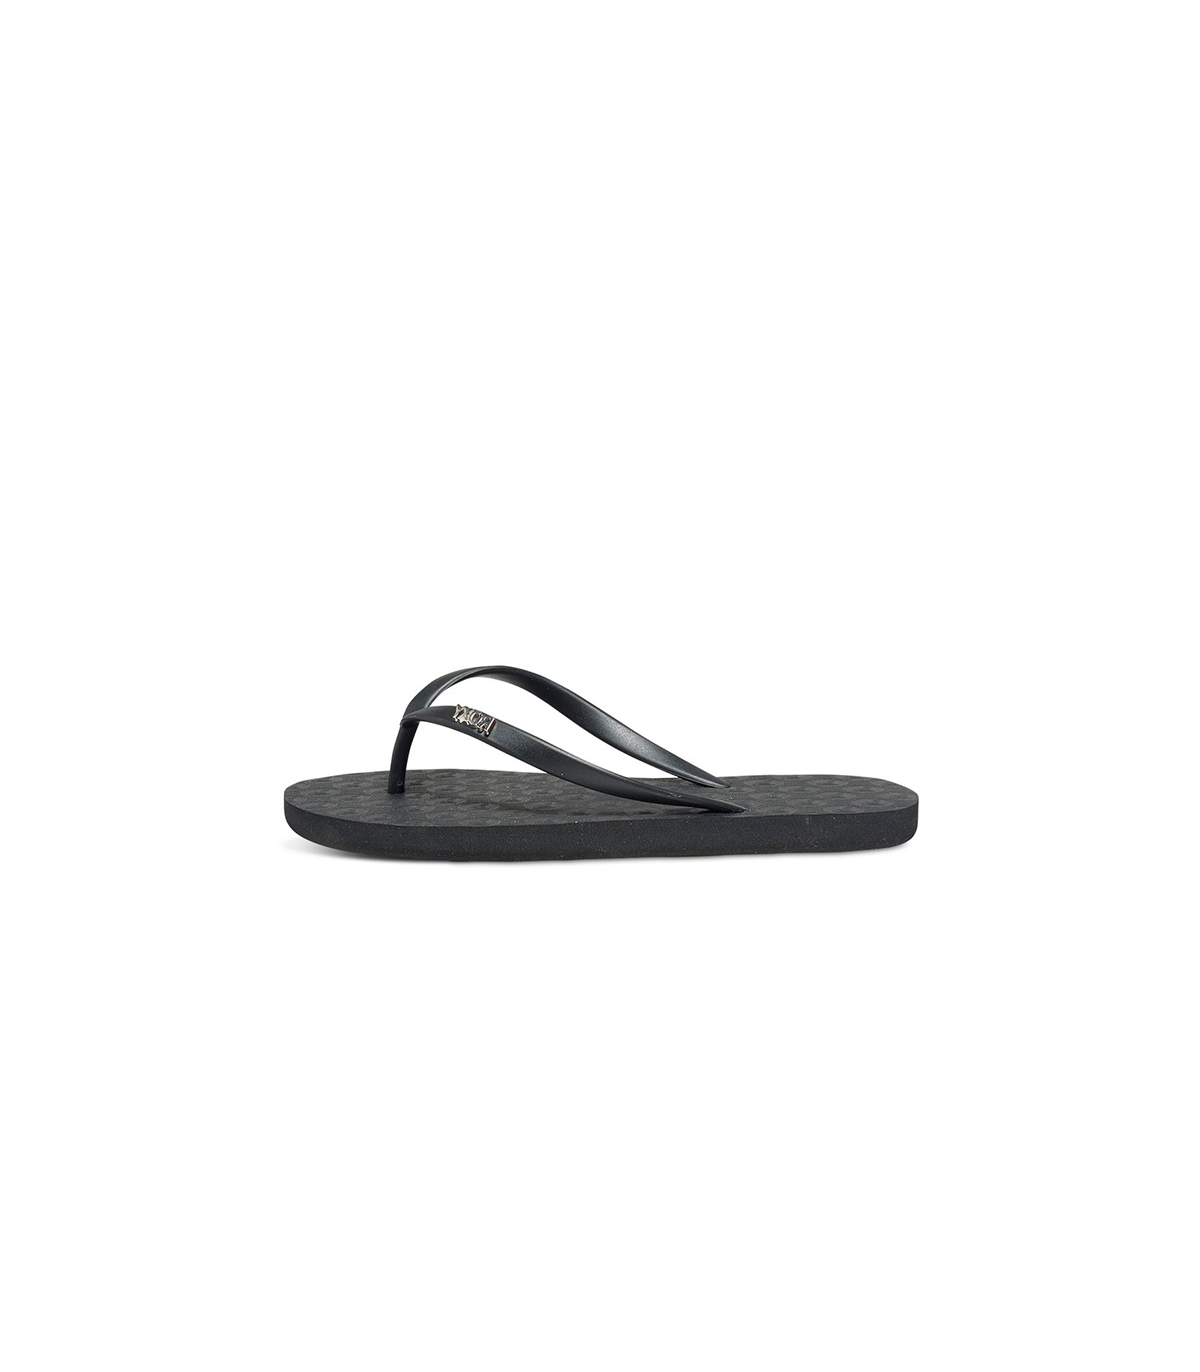 688f8505f04f2 Buy Roxy Black Flip Flops Women